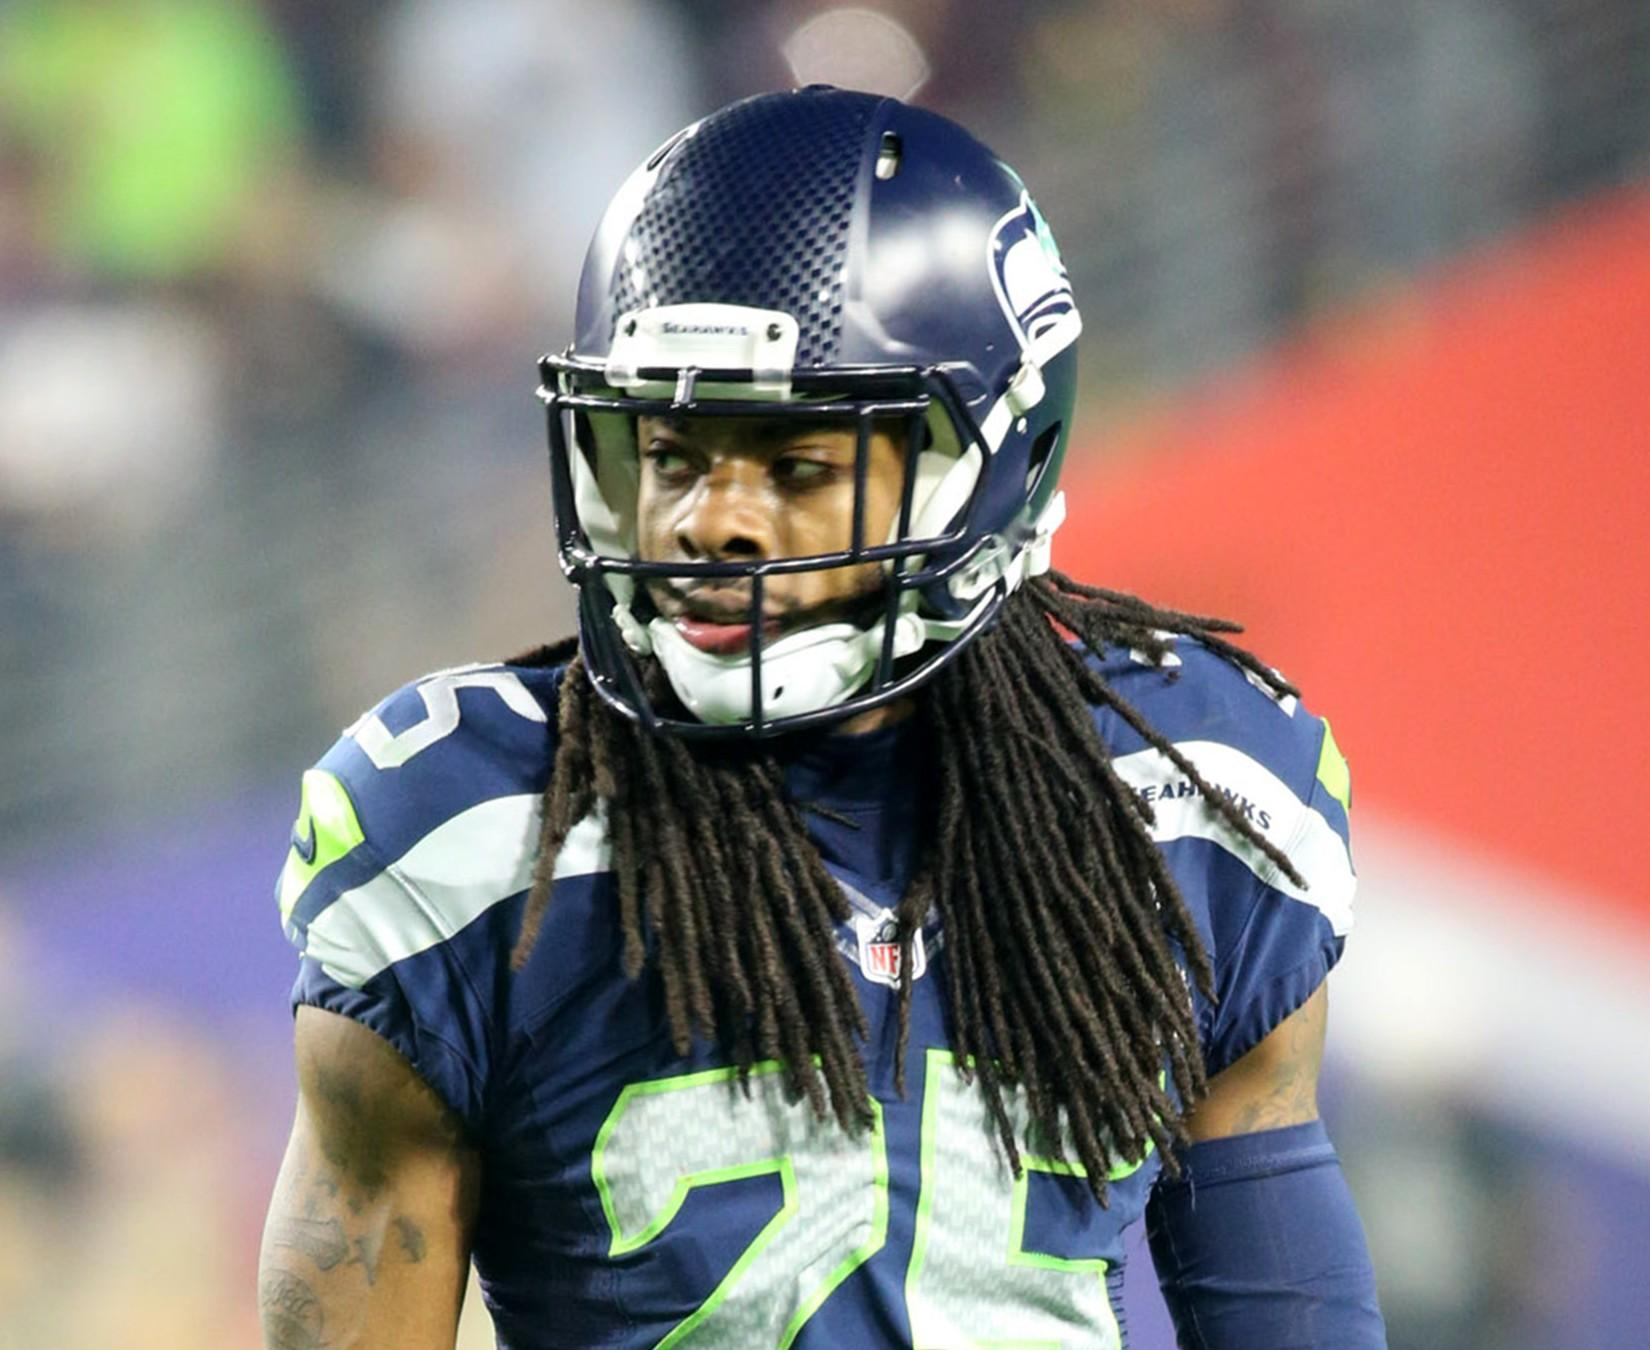 Cornerback Richard Sherman of The Seattle Seahawks recently expressed his opinions on National Signing Day. Is he correct? Photo courtesy of Tribune News Services